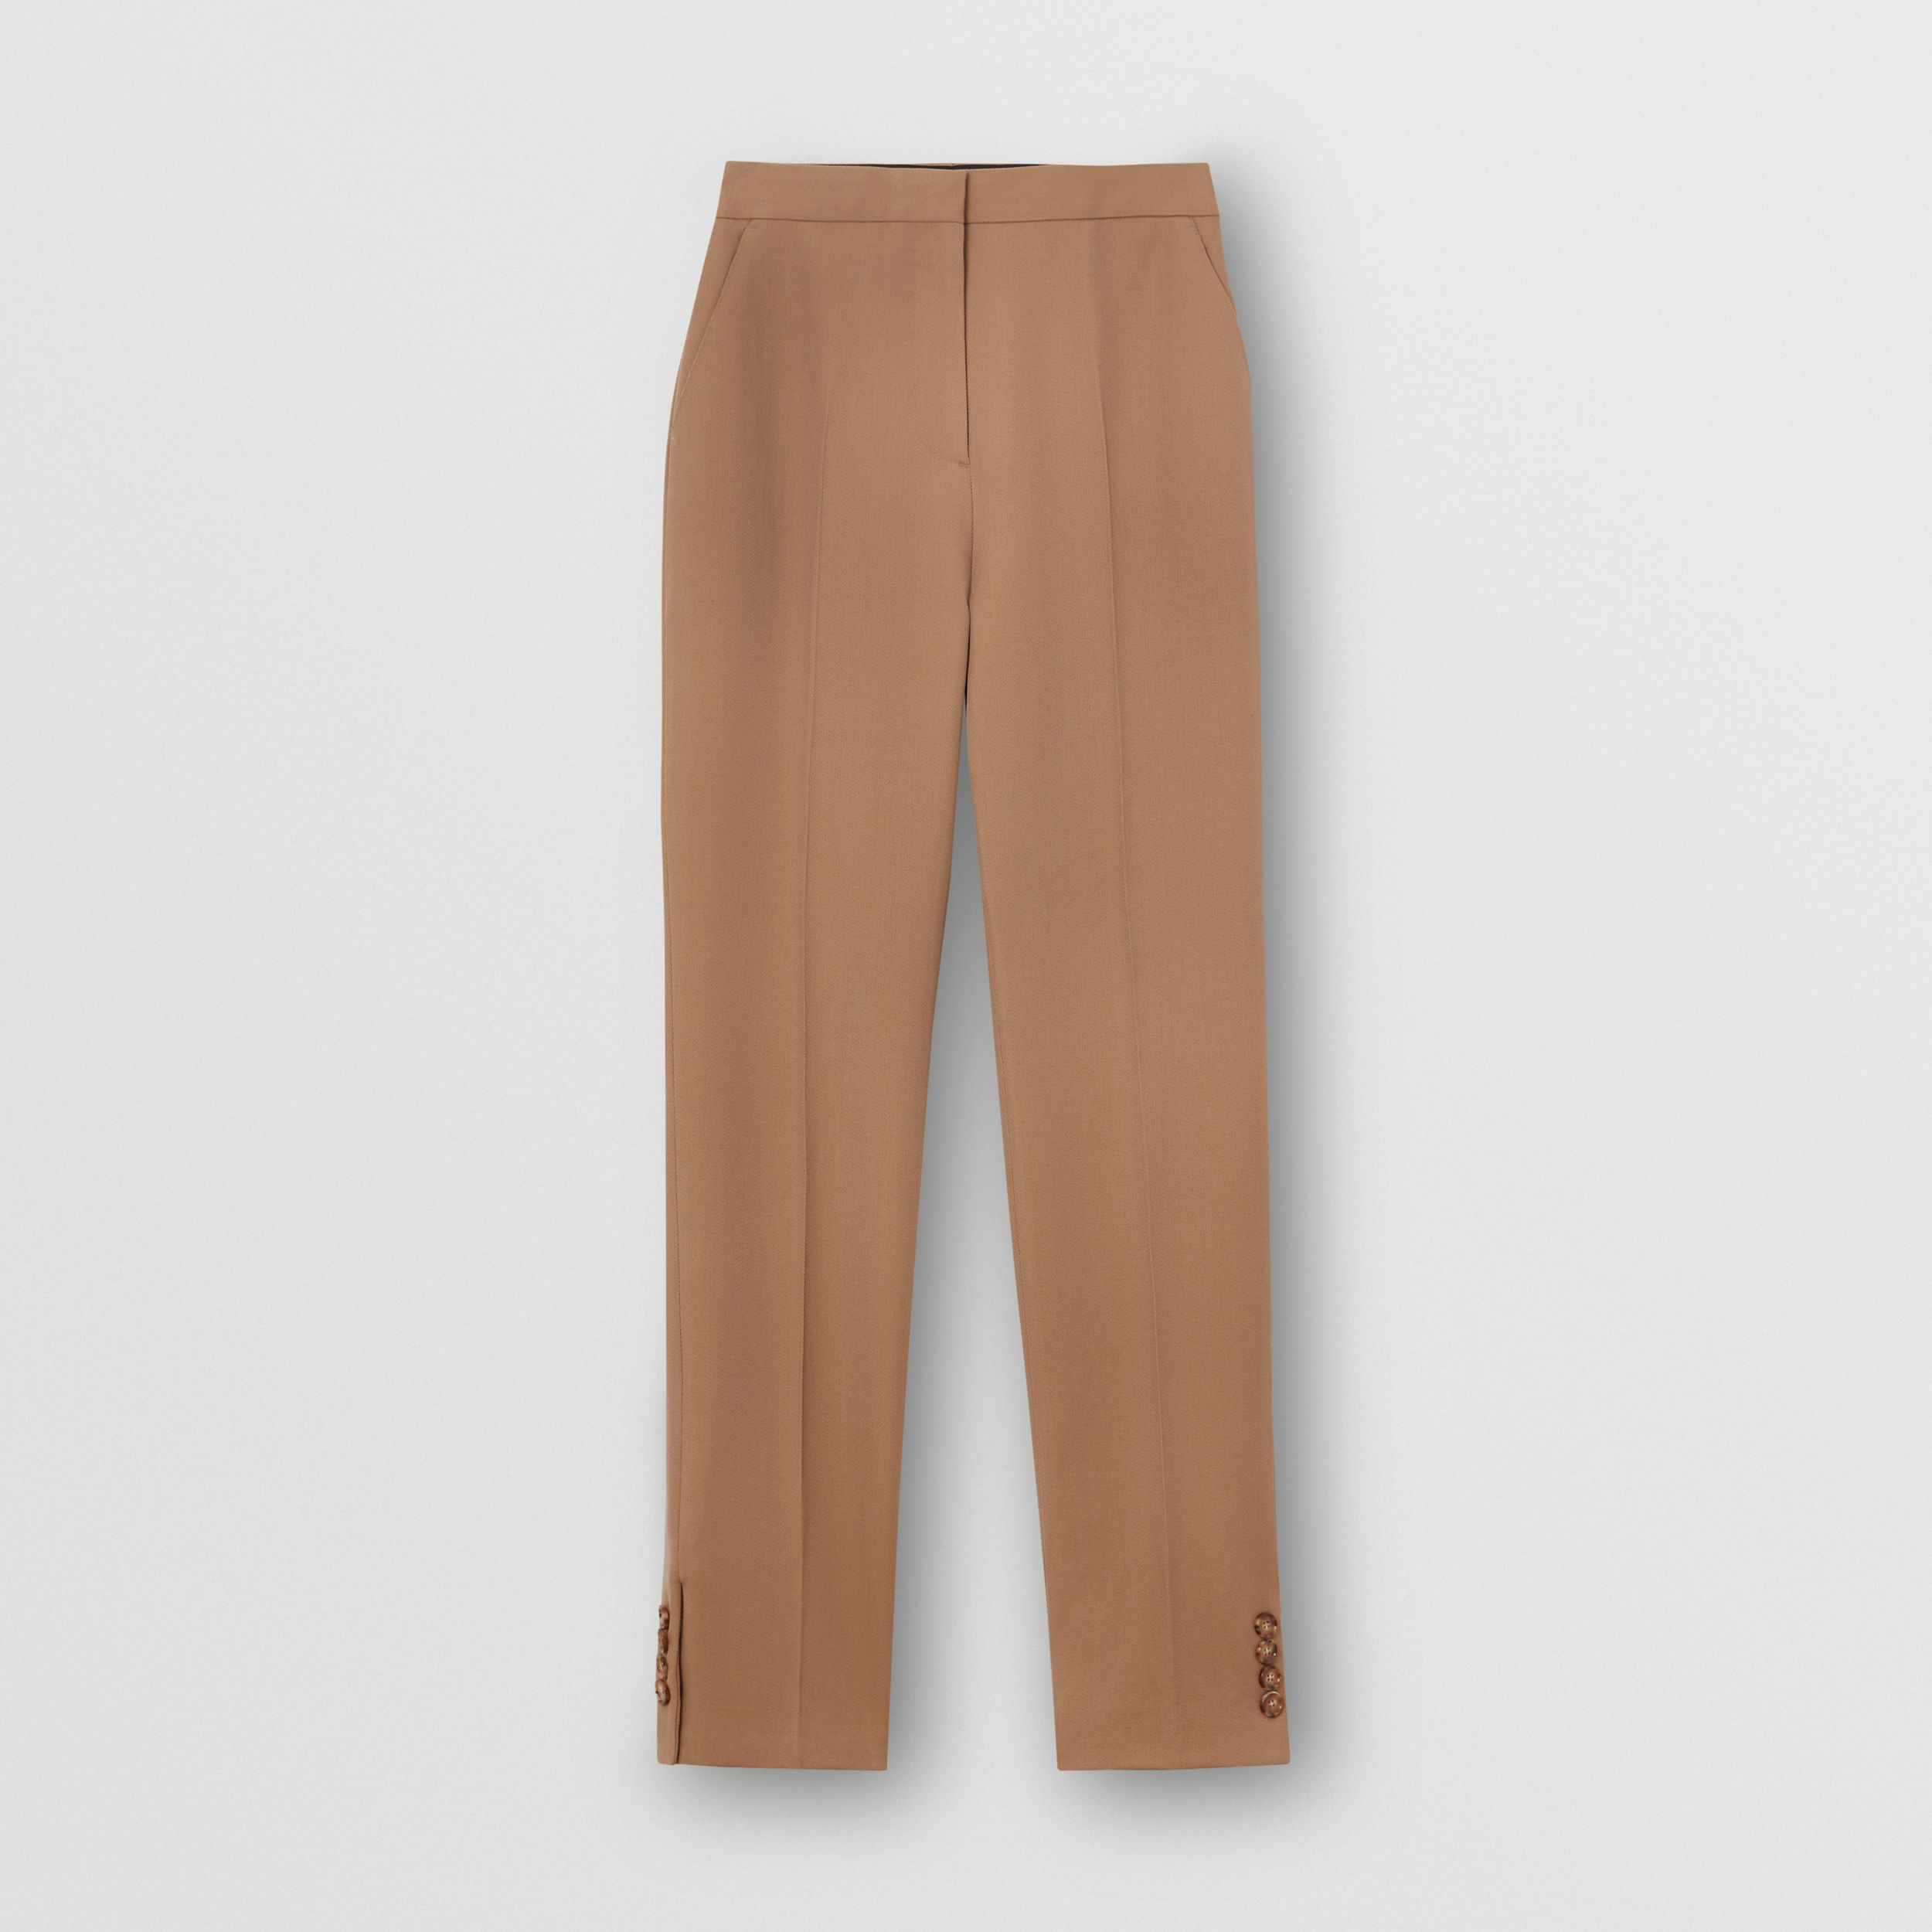 Straight Fit Button Detail Wool Blend Tailored Trousers in Camel - Women | Burberry - 4